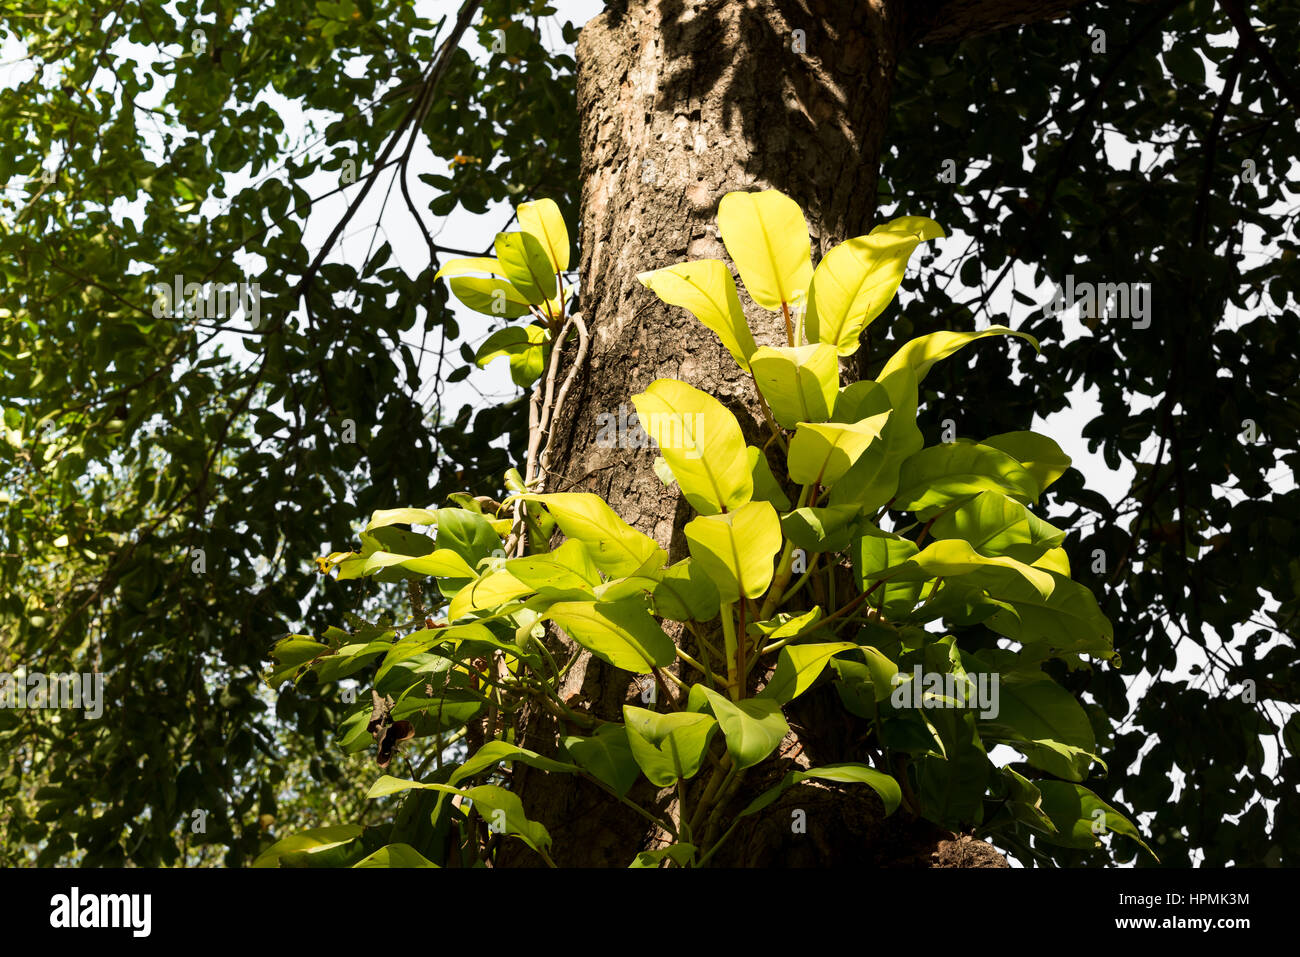 Parasitic plants stock photos parasitic plants stock images alamy - Flowers that grow on tree trunks ...